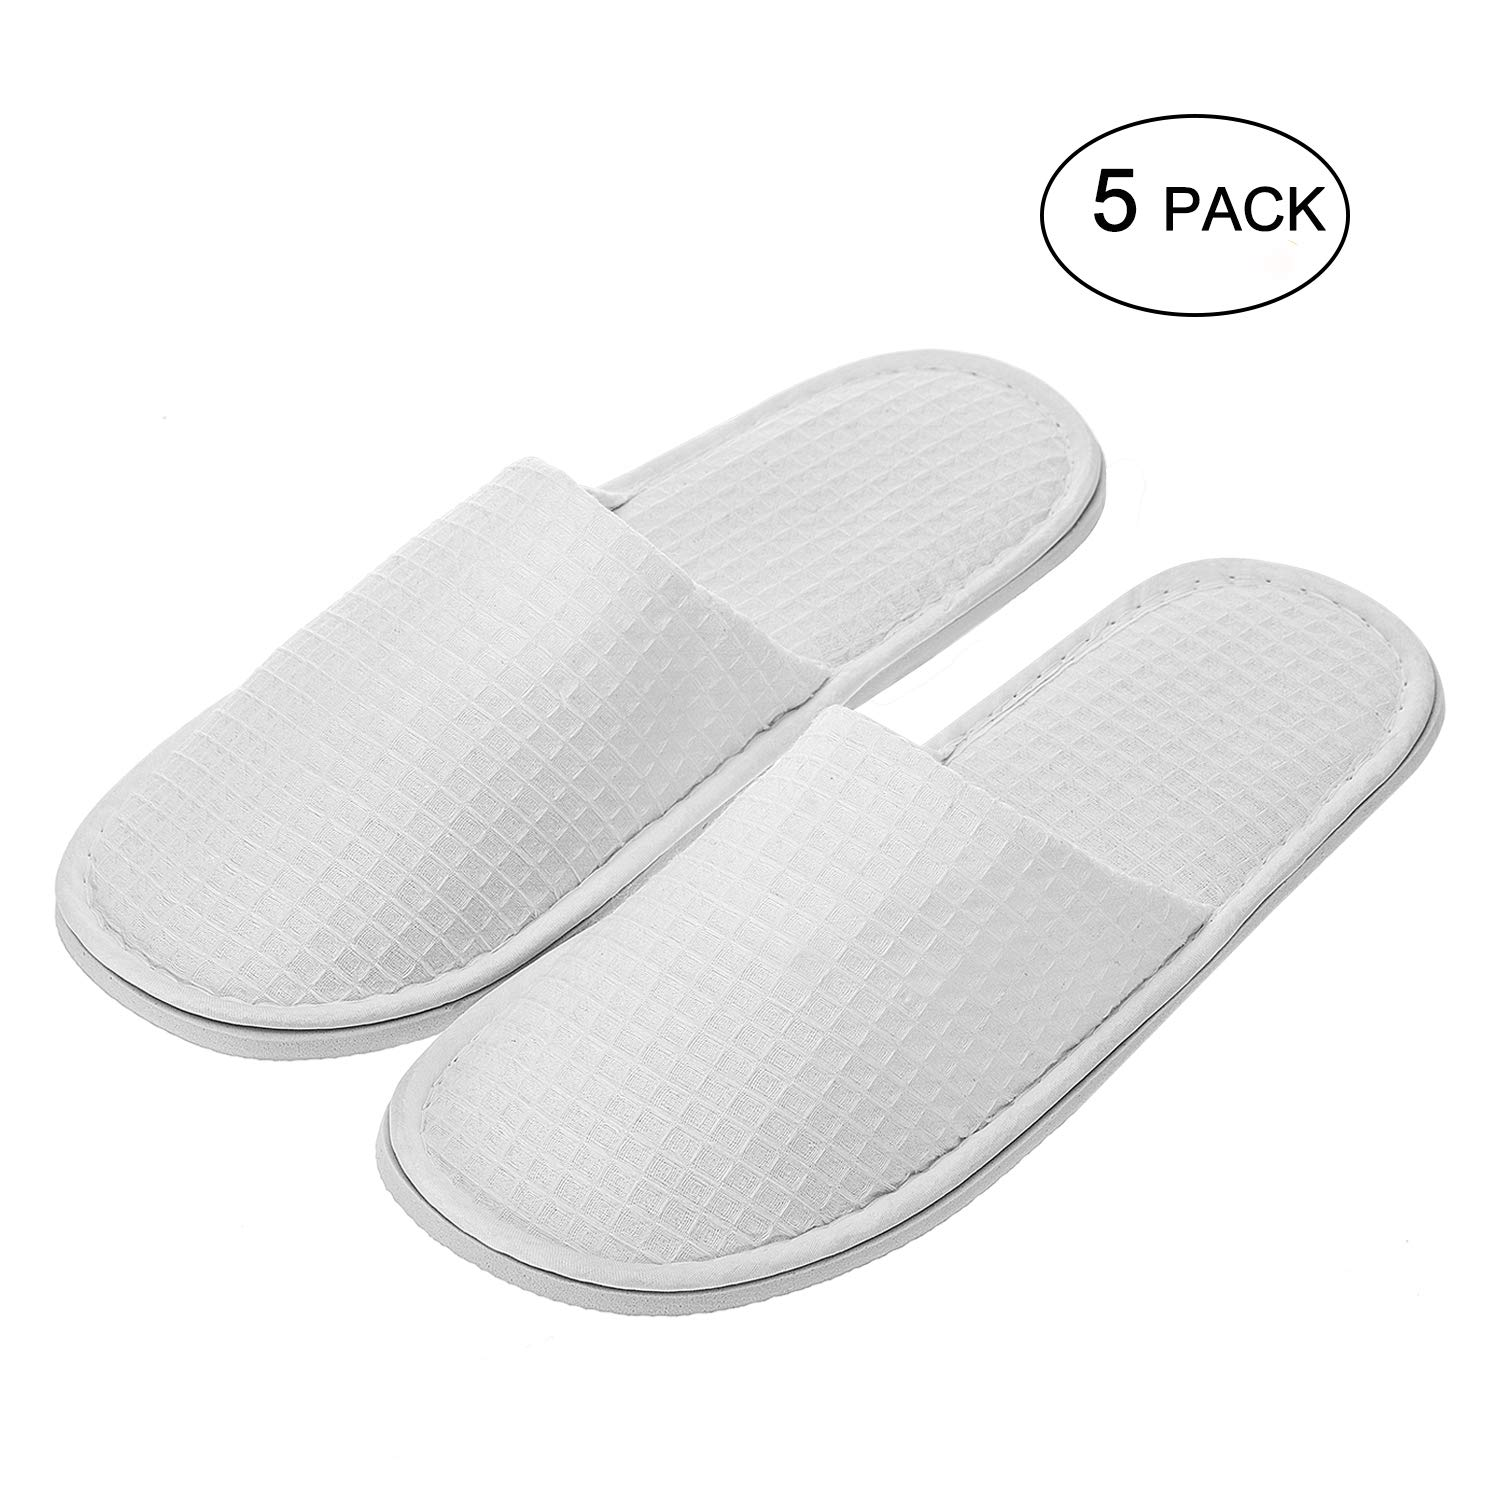 echoapple Waffle Closed Toe White Slippers-Two Size Fit Most Men and Women for Spa, Party Guest, Hotel and Travel (Medium, White-5 Pairs) by echoapple